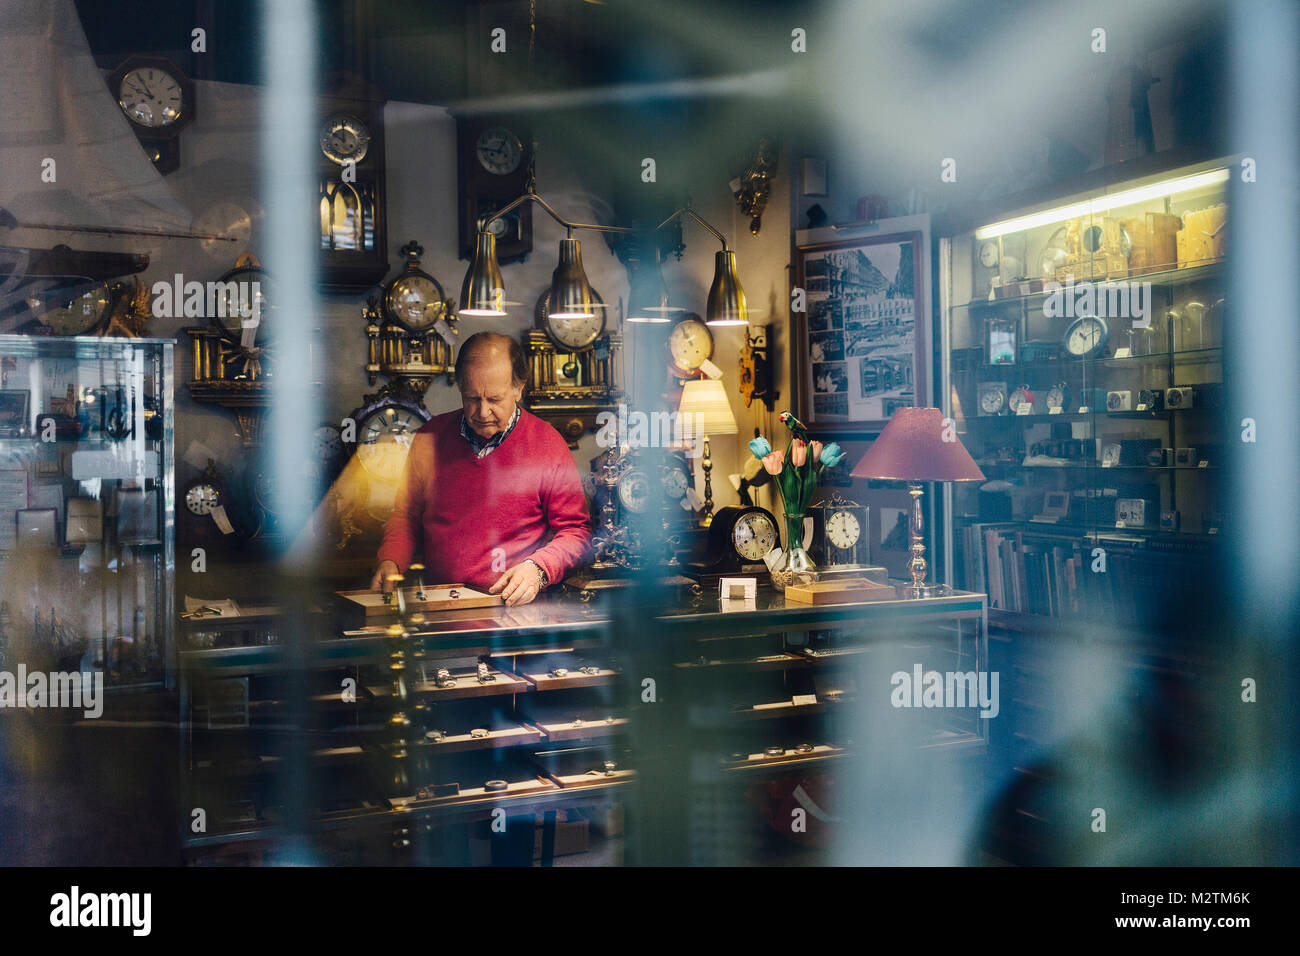 Man at counter in antique store in Sweden - Stock Image